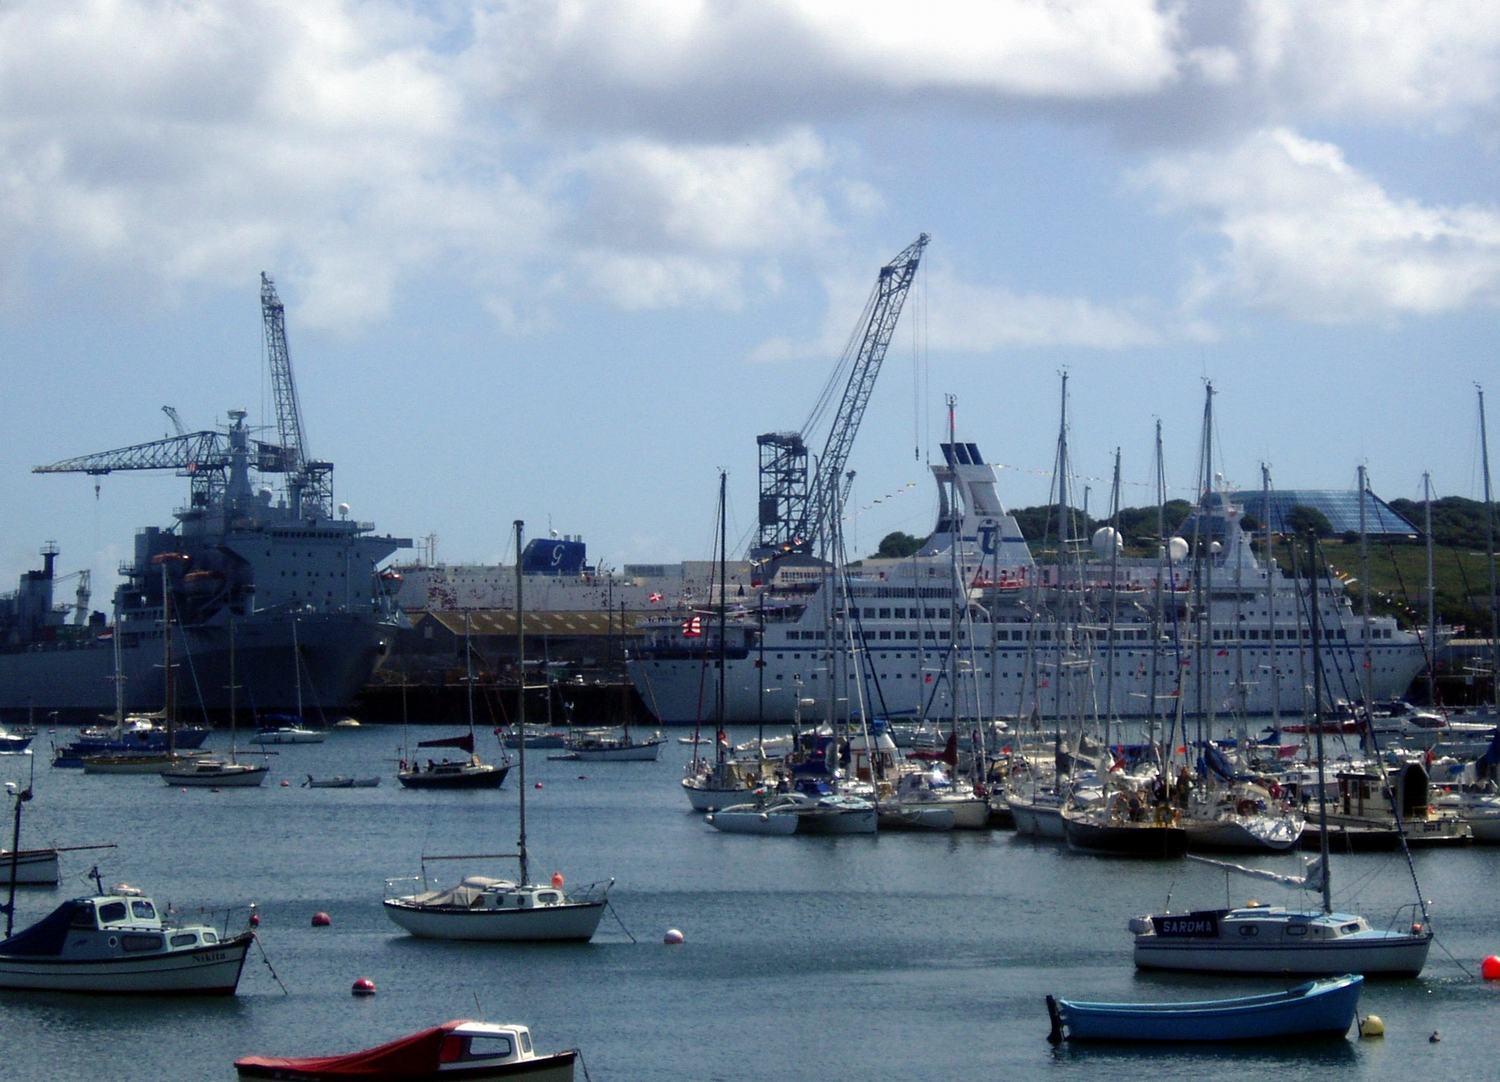 Falmouth Docks is the major port of Cornwall, and one of the largest natural harbours in the world